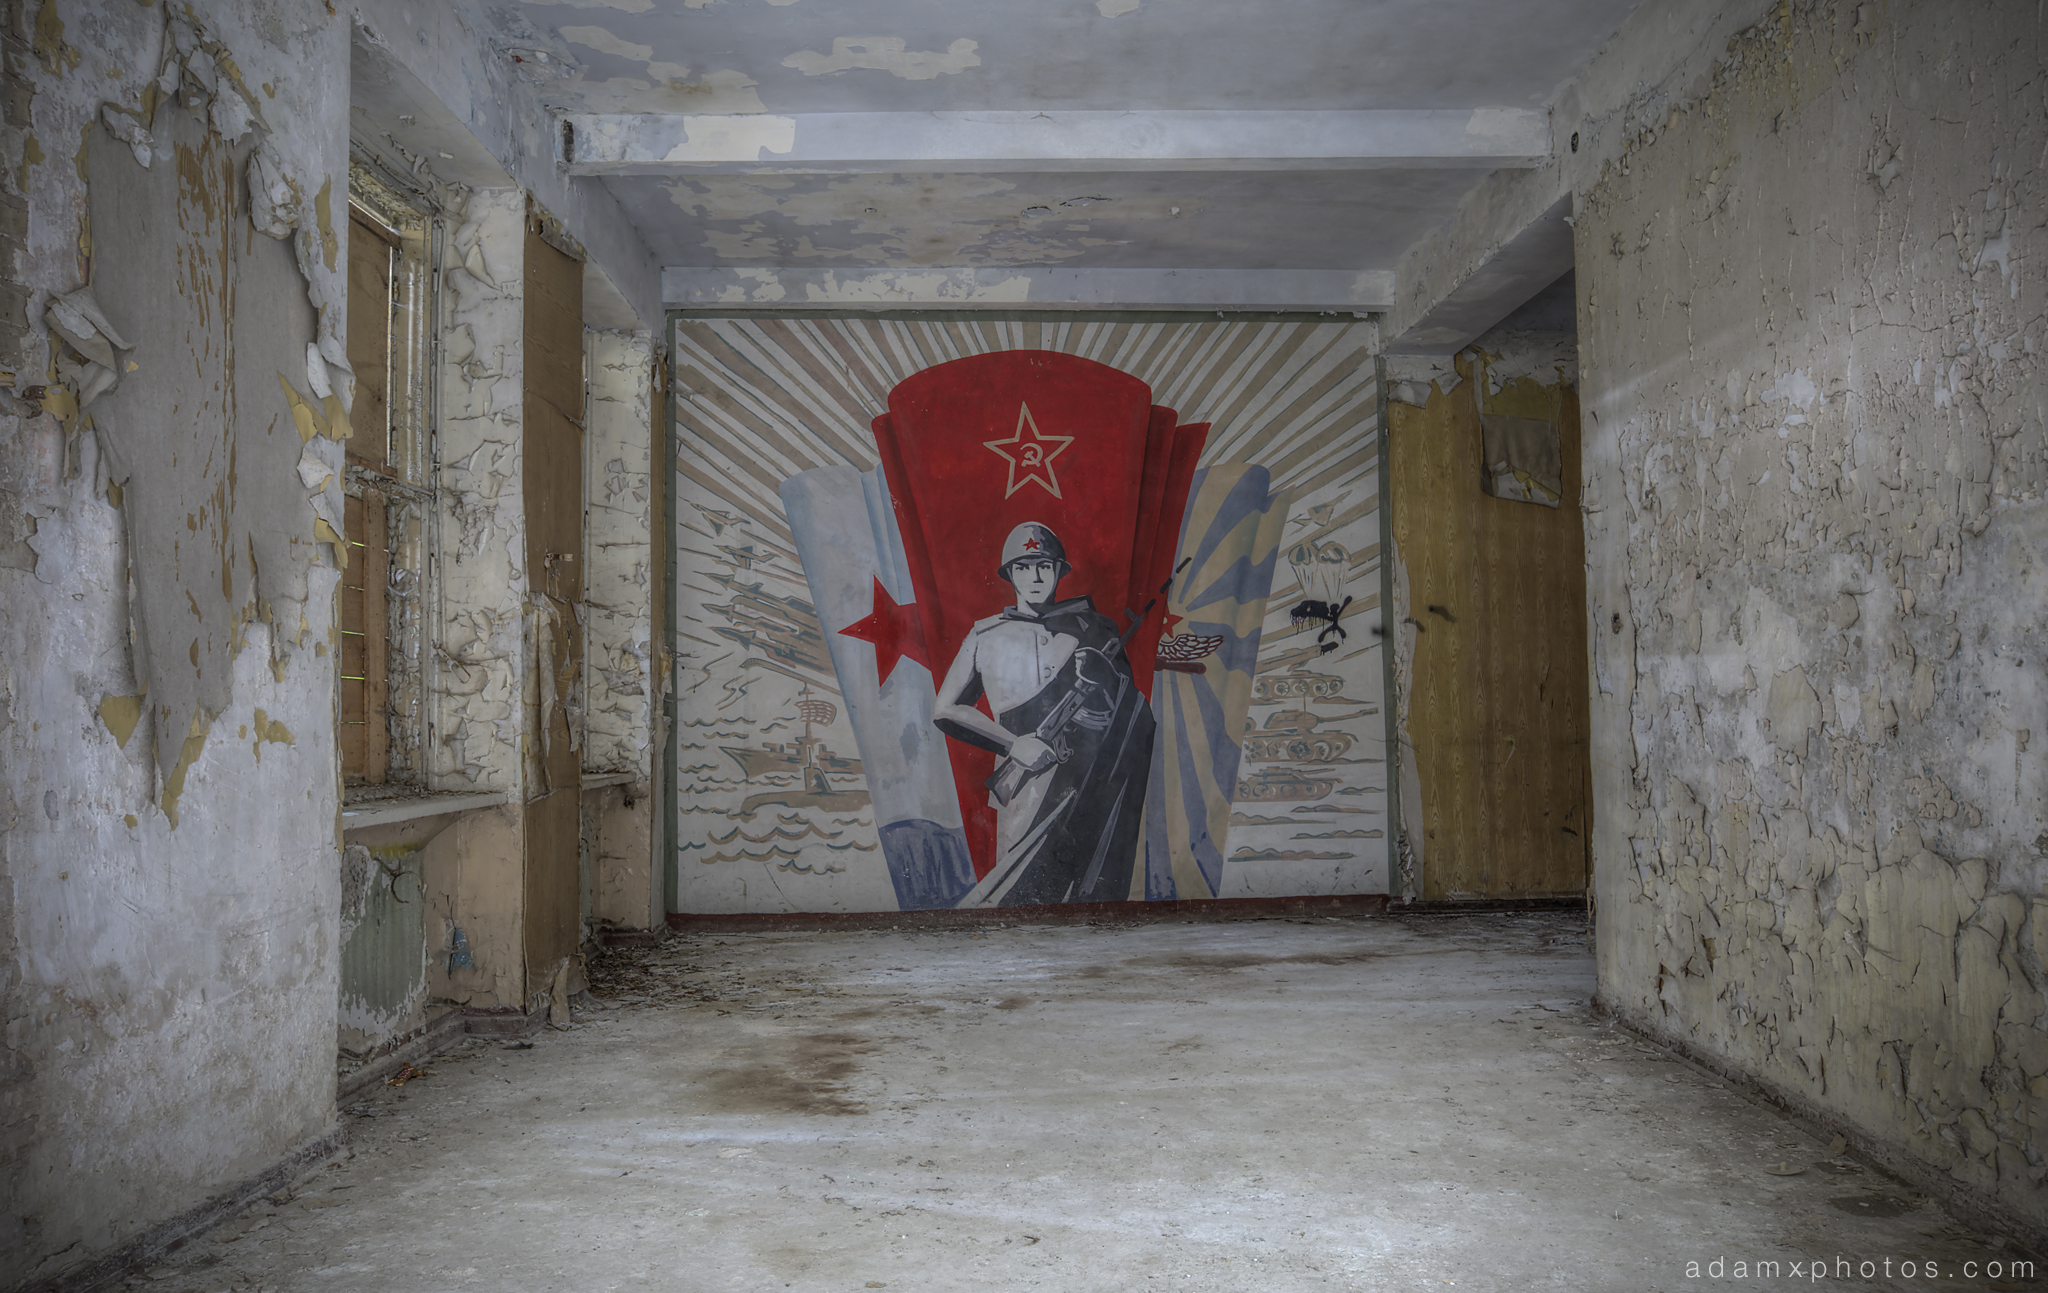 Explore 95 Altes Lager Soviet Air Base And Flight School